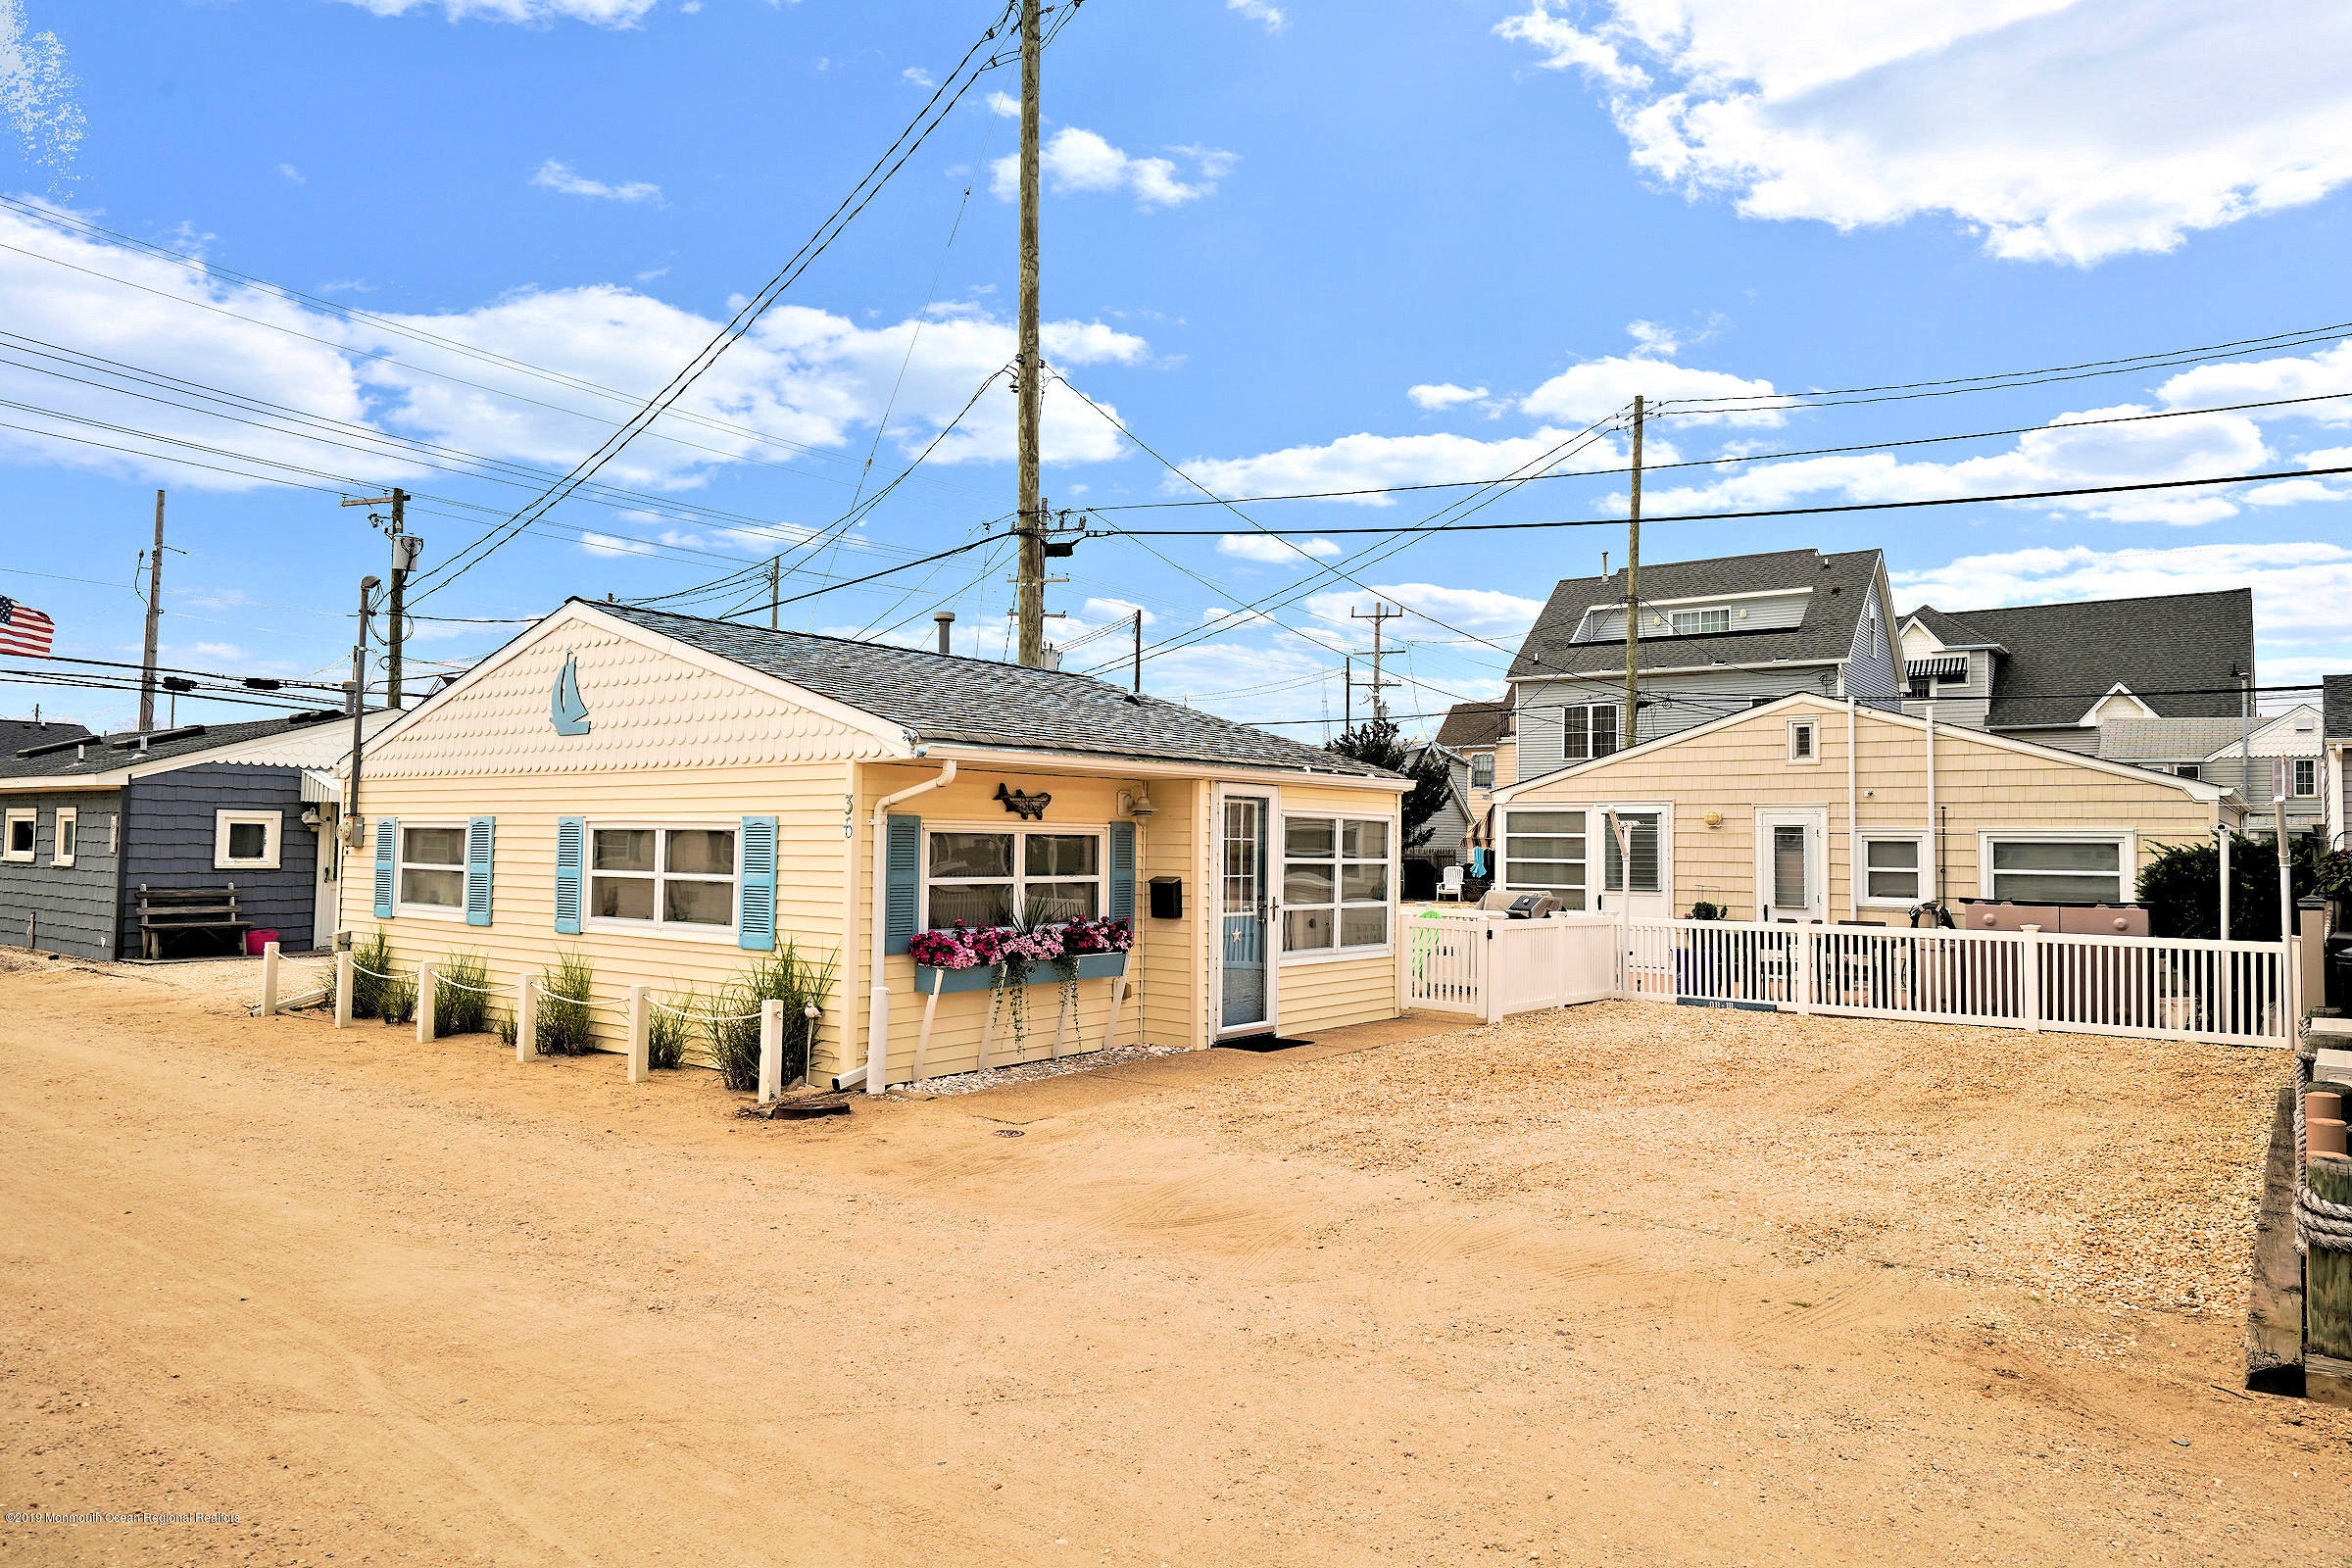 36 E Tarpon Way - Lavallette